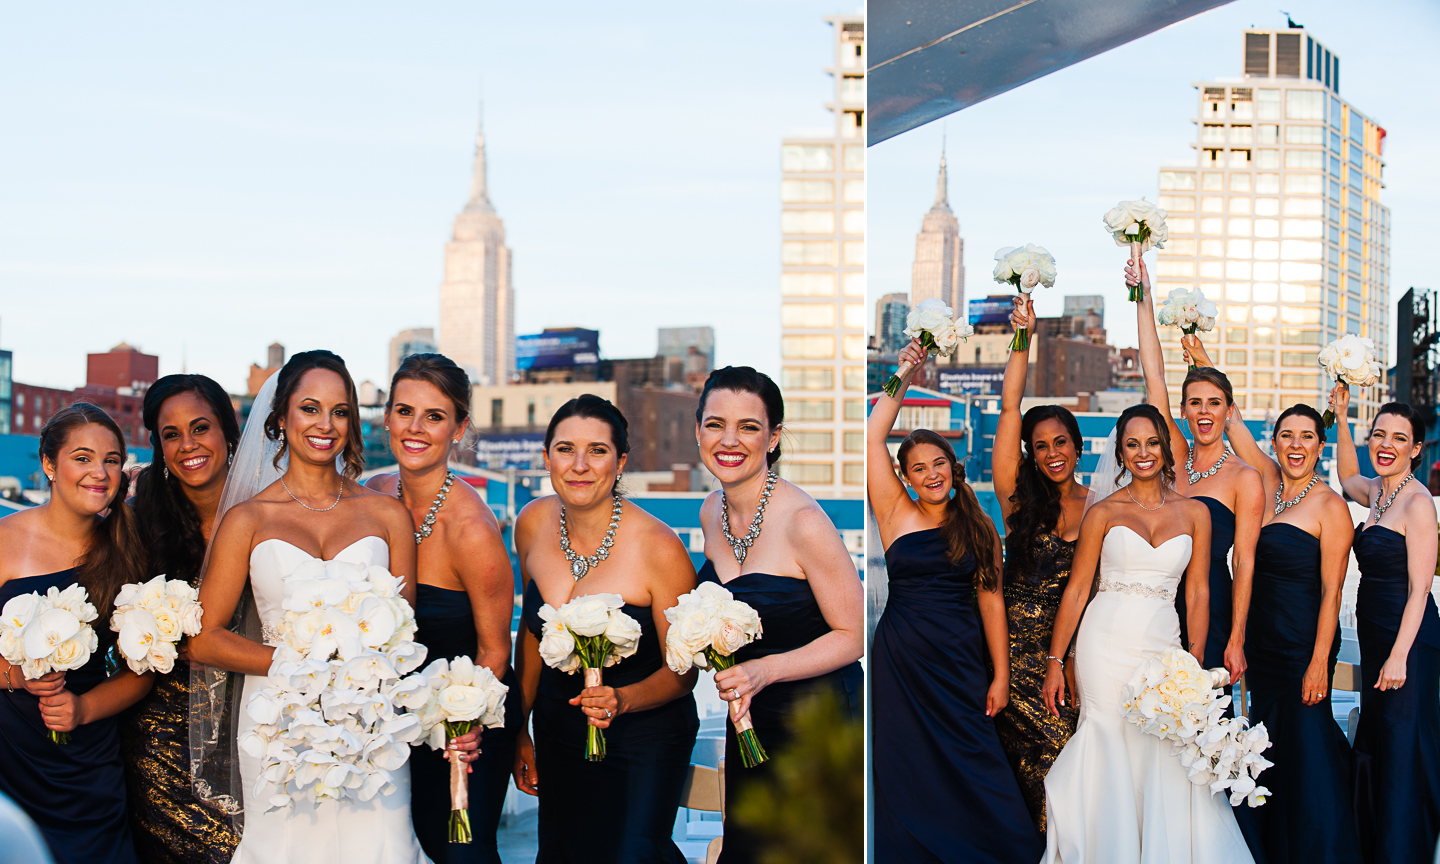 Wedding party pictures on The Atlantica Yacht in NYC